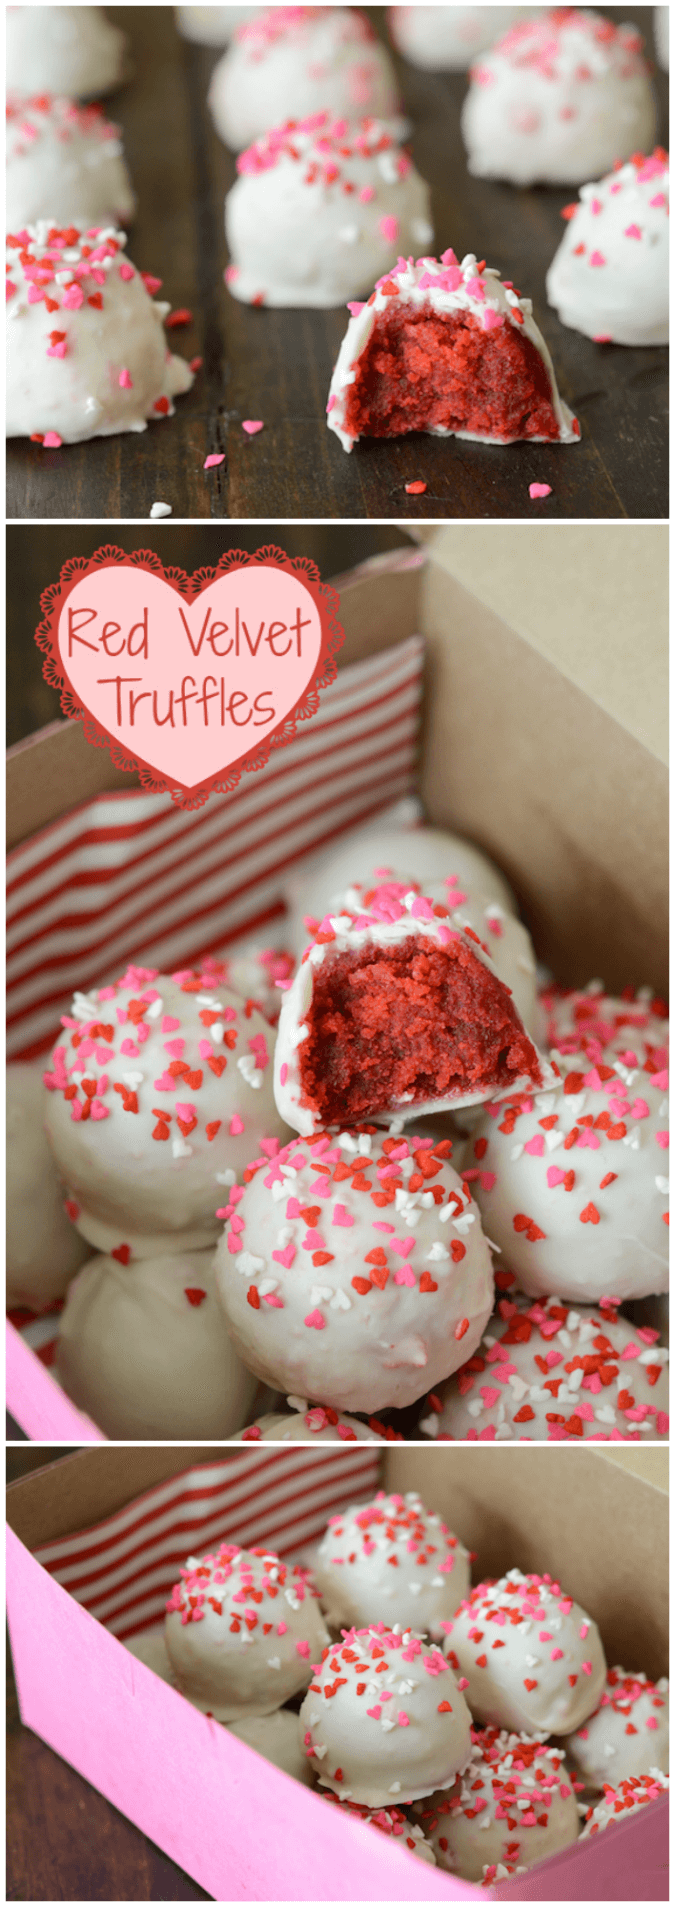 Red Velvet Truffles - fun to make with the kids and delicious!